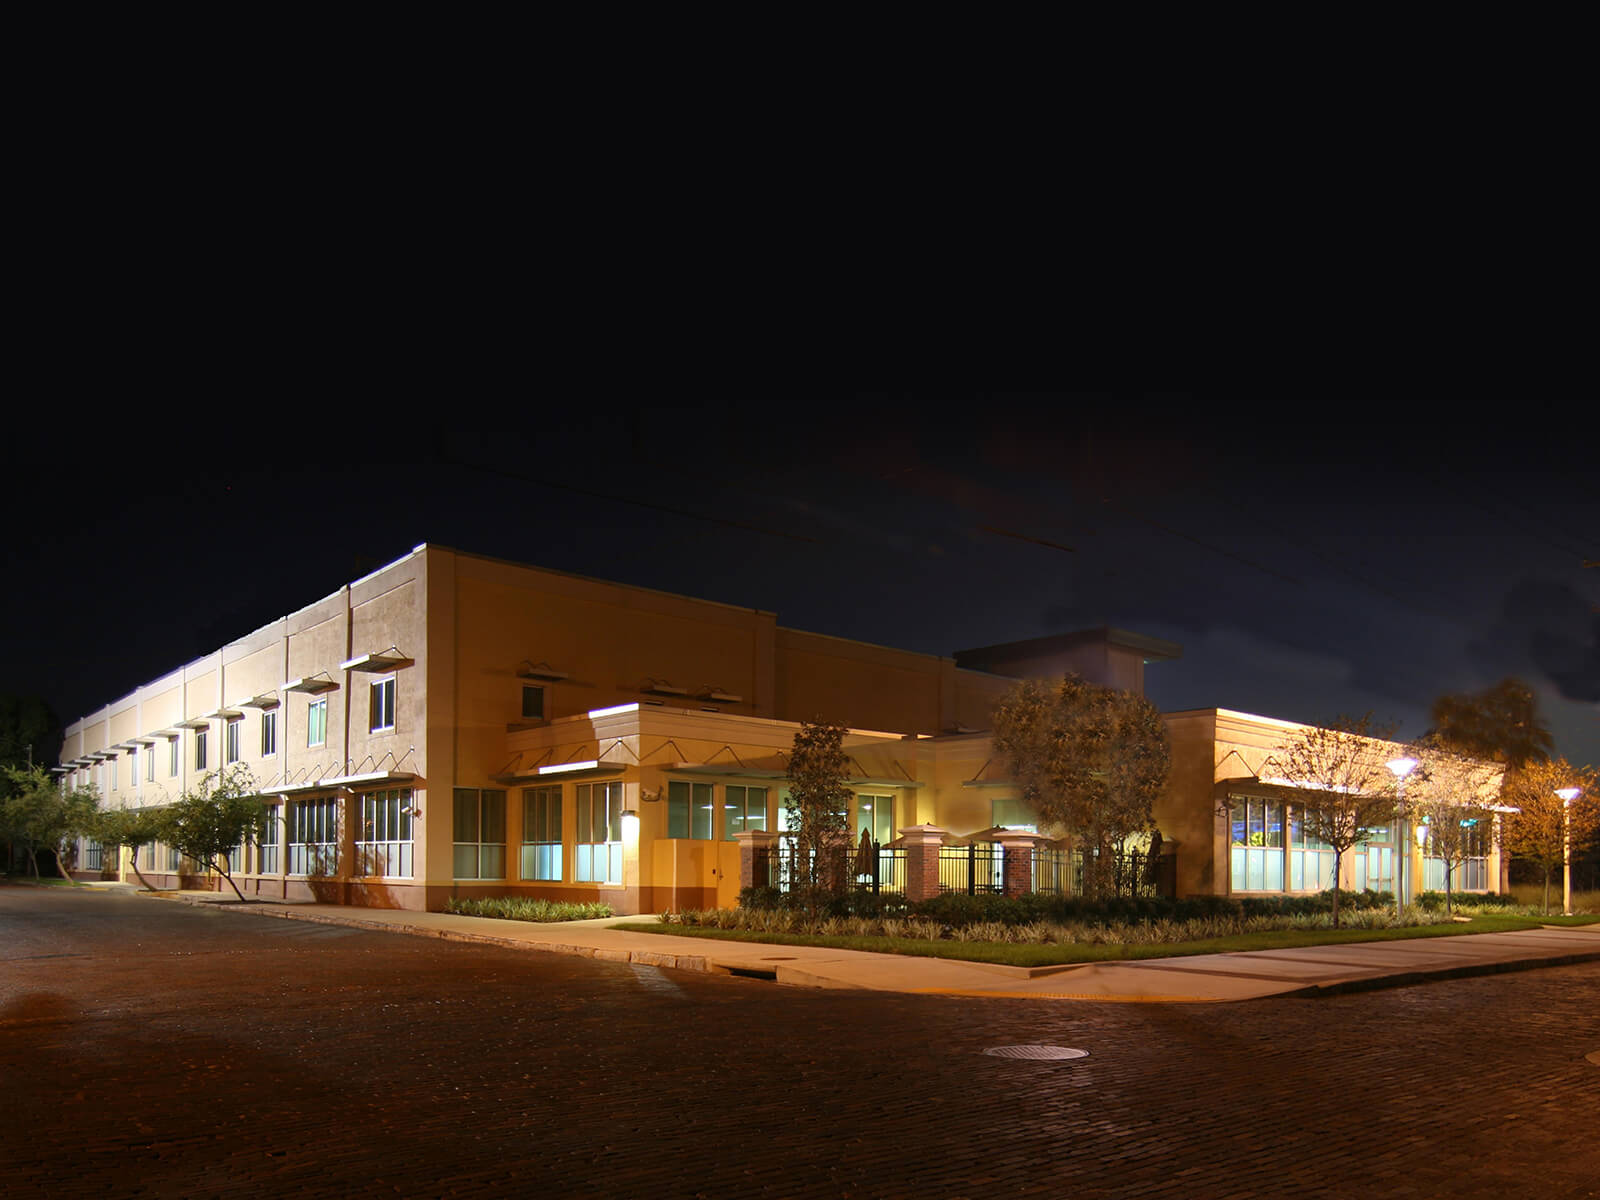 Tampa General Hospital Corporate Center